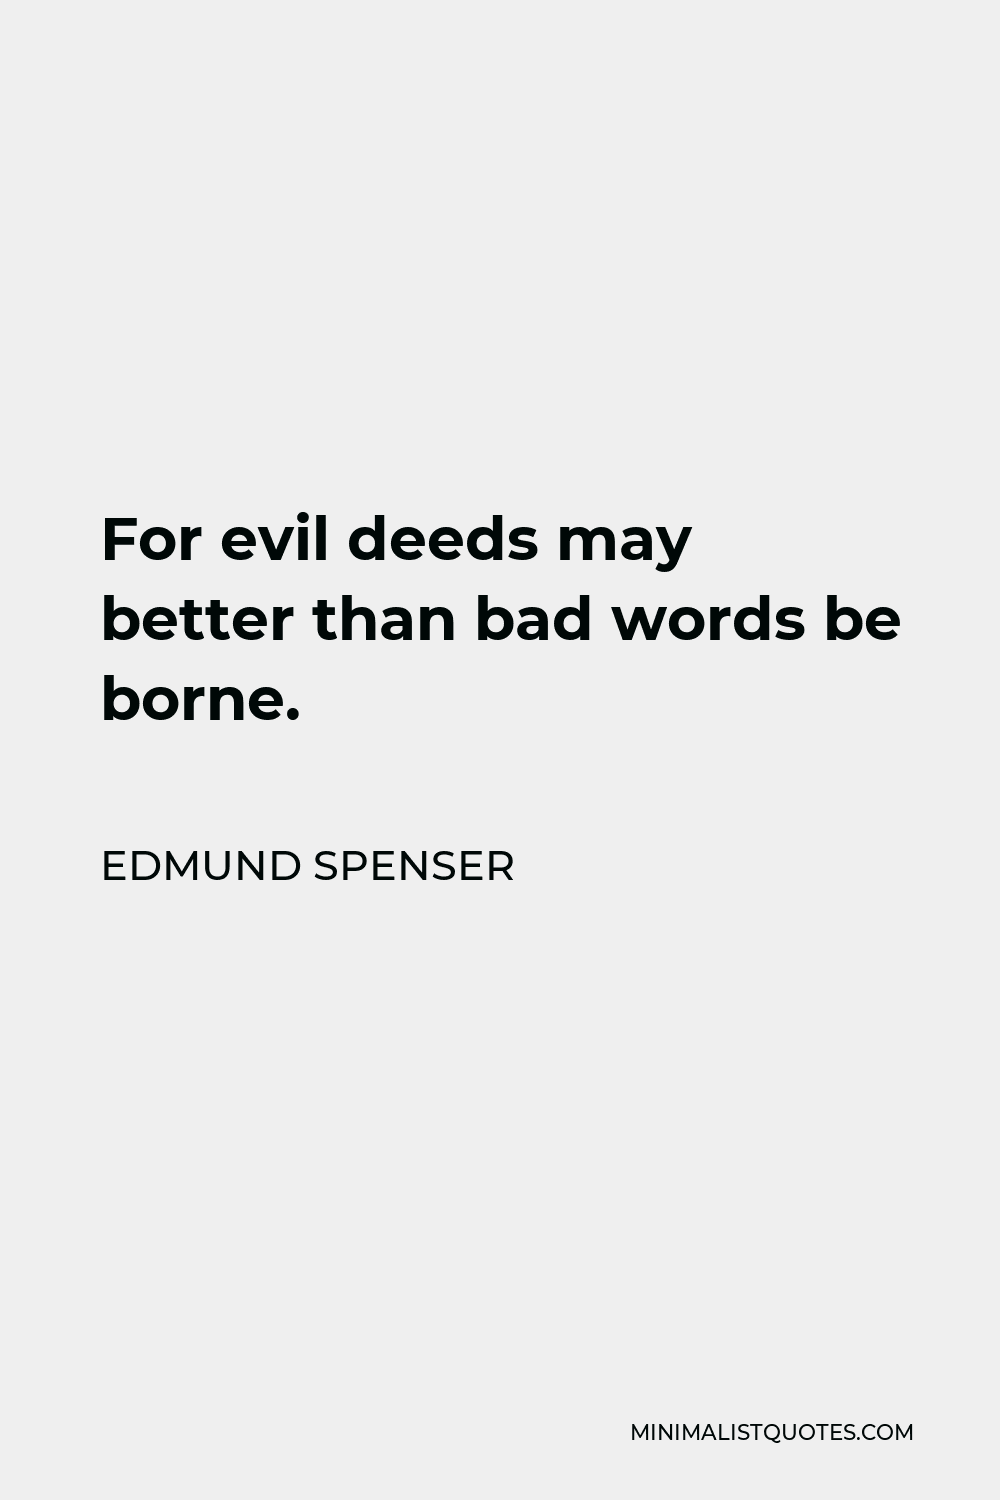 Edmund Spenser Quote - For evil deeds may better than bad words be borne.